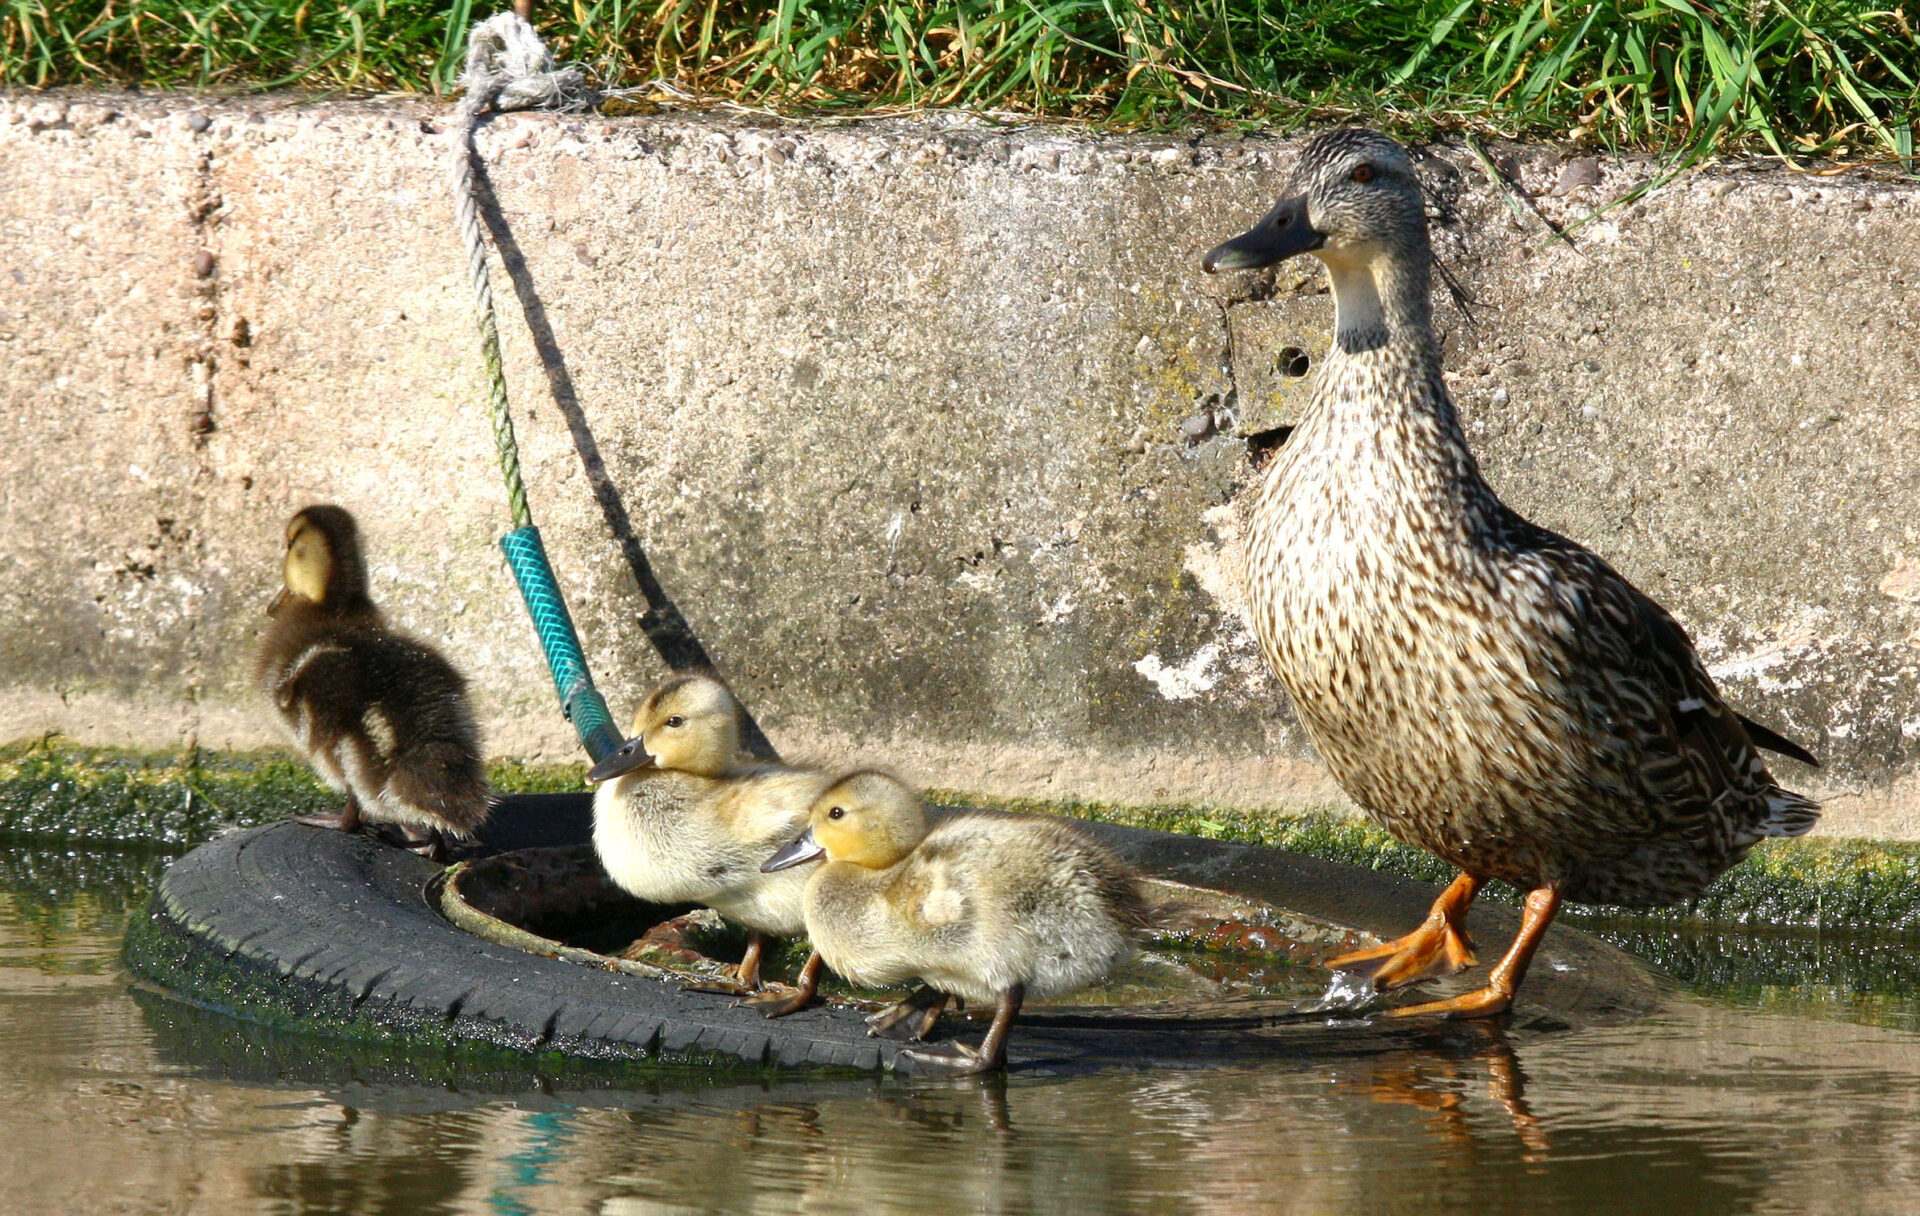 Home Sweet Home. Mallards make good Mothers. I love 'em. MORE PICS IN THE GALLERY below left.